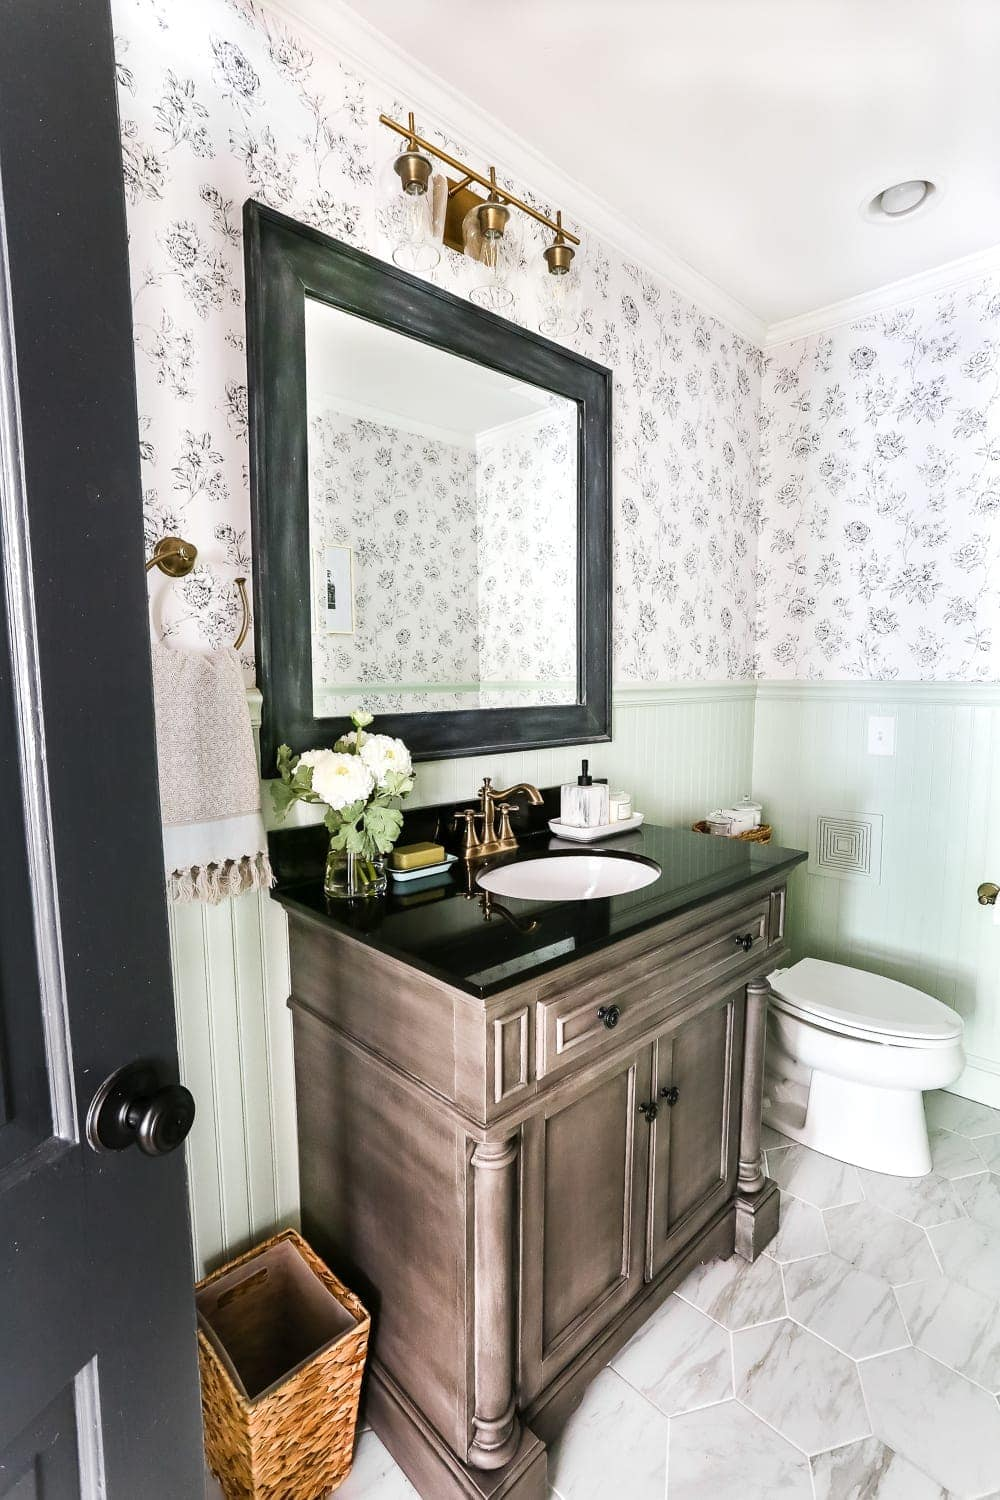 Mint, black, and white powder room with floral wallpaper and aged brass